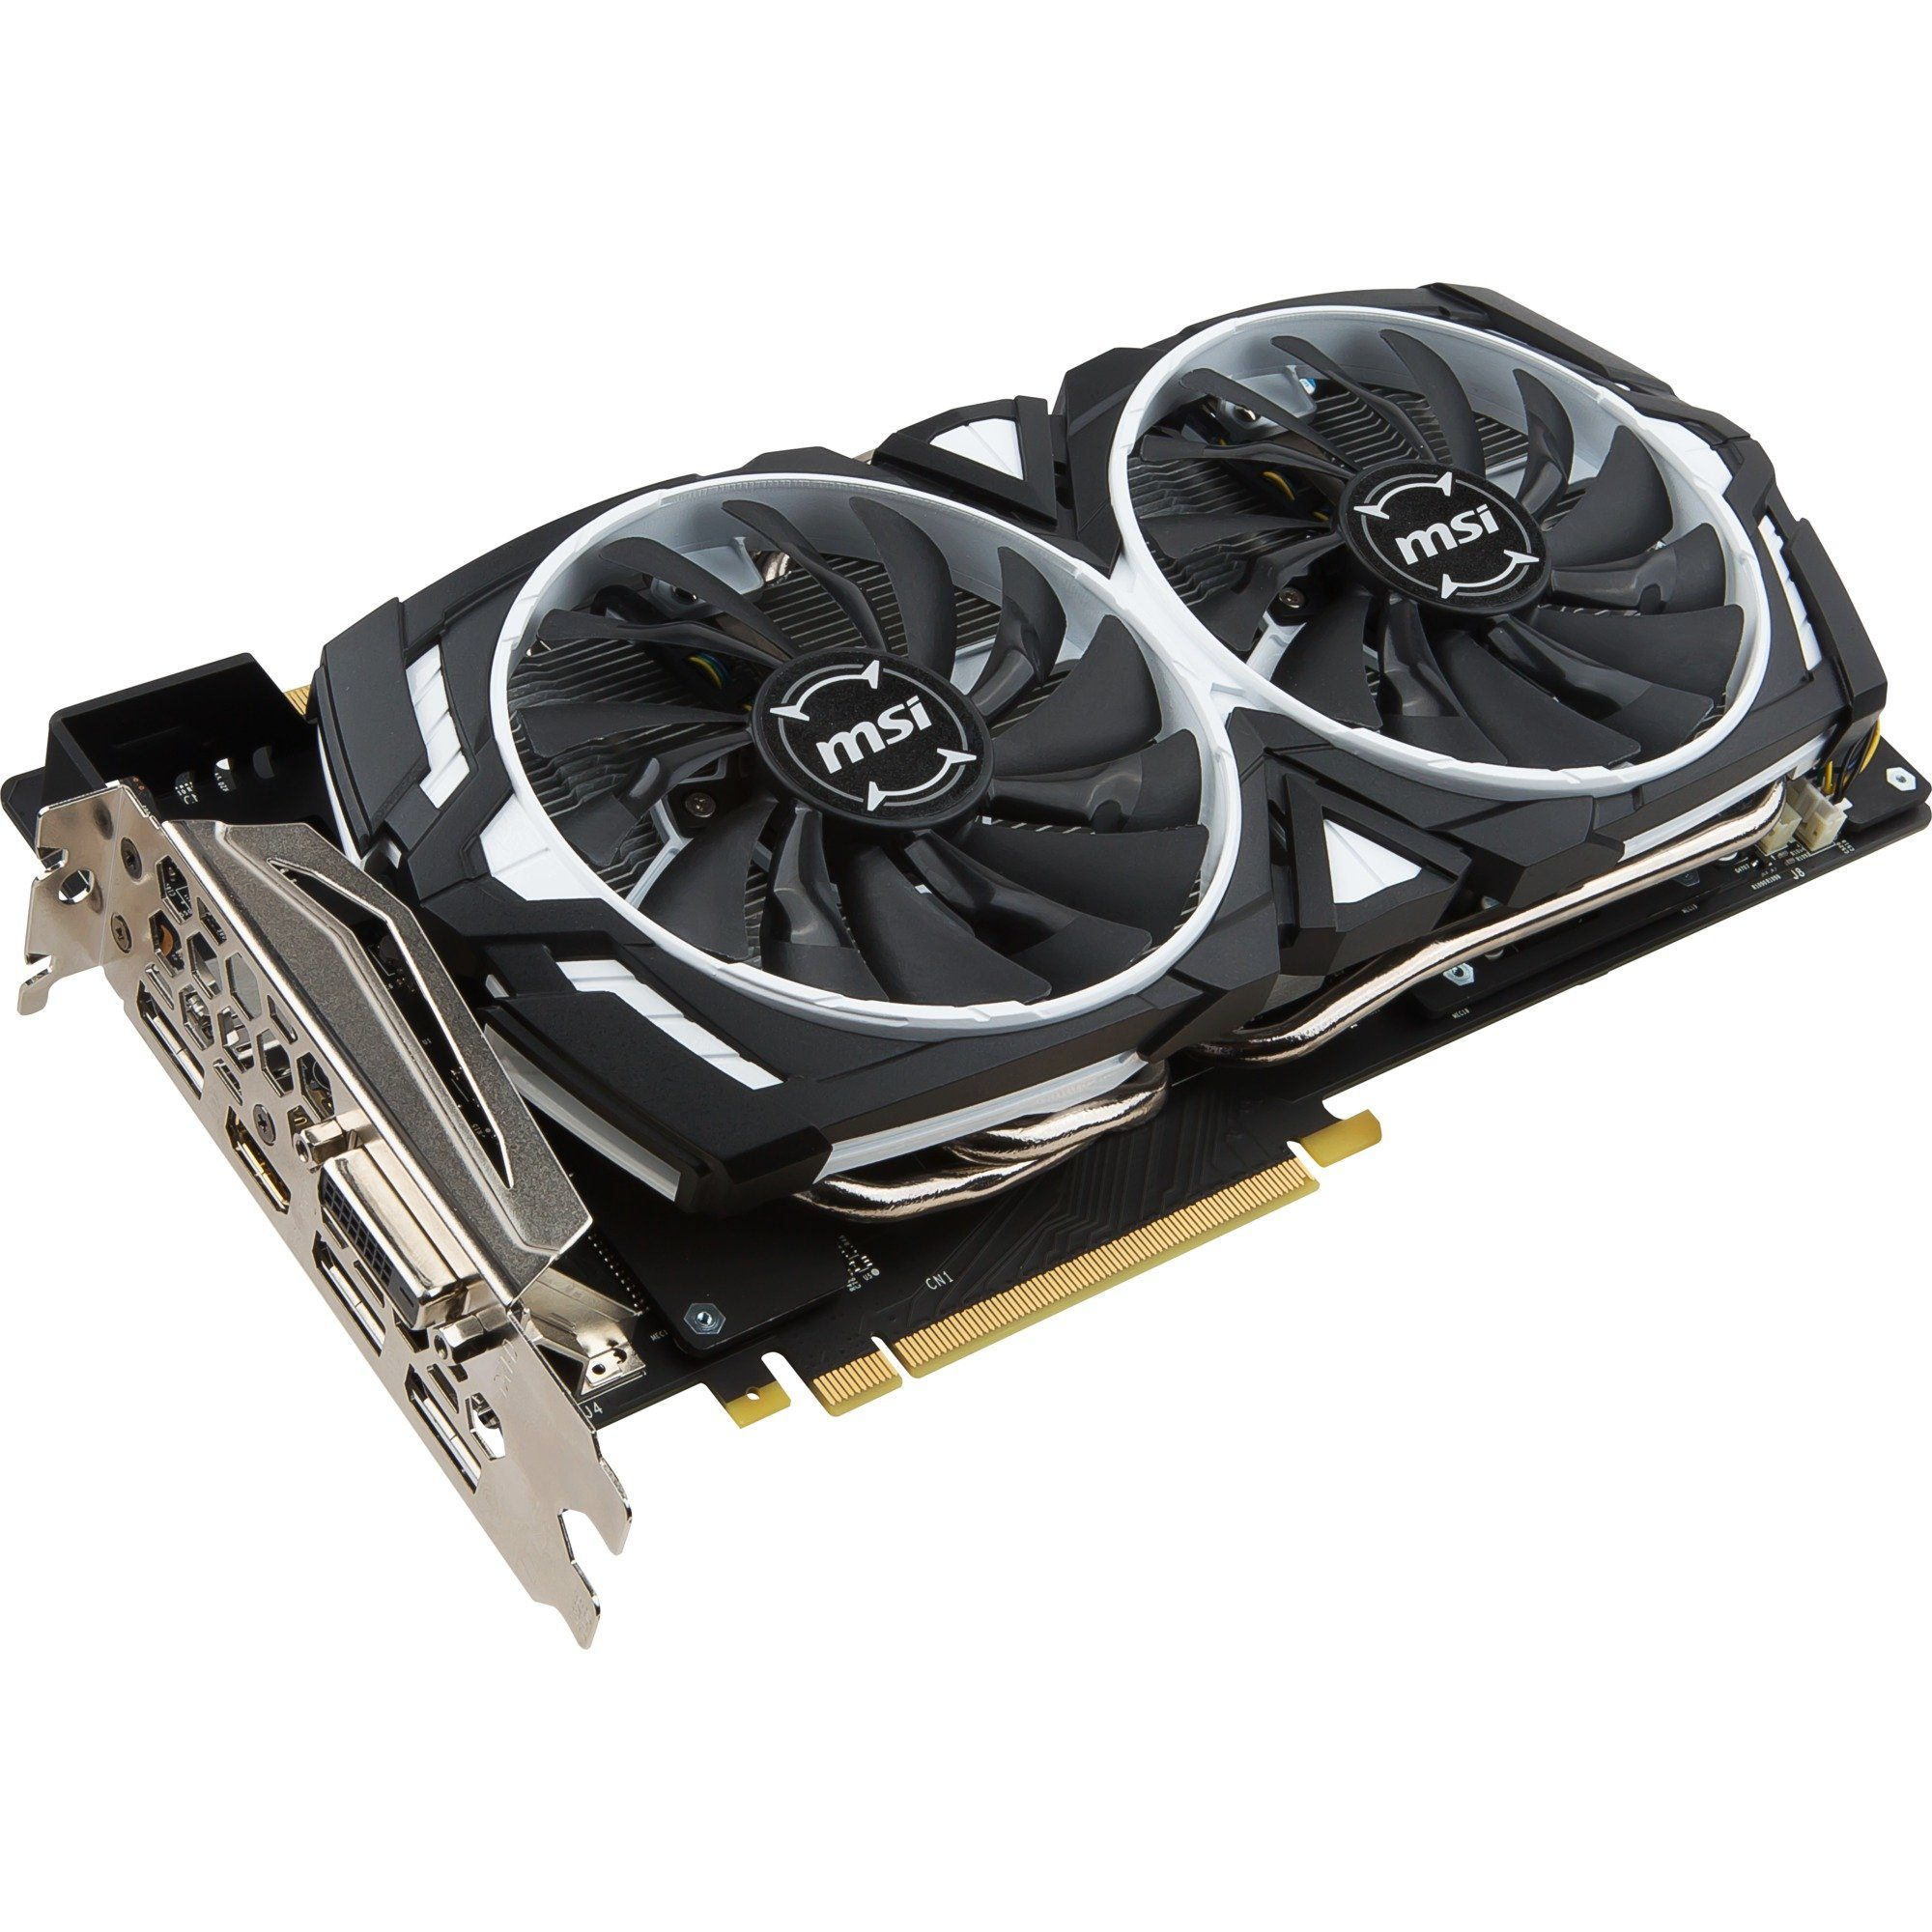 MSI Grafikkarte »GeForce GTX 1070 ARMOR 8G OC«